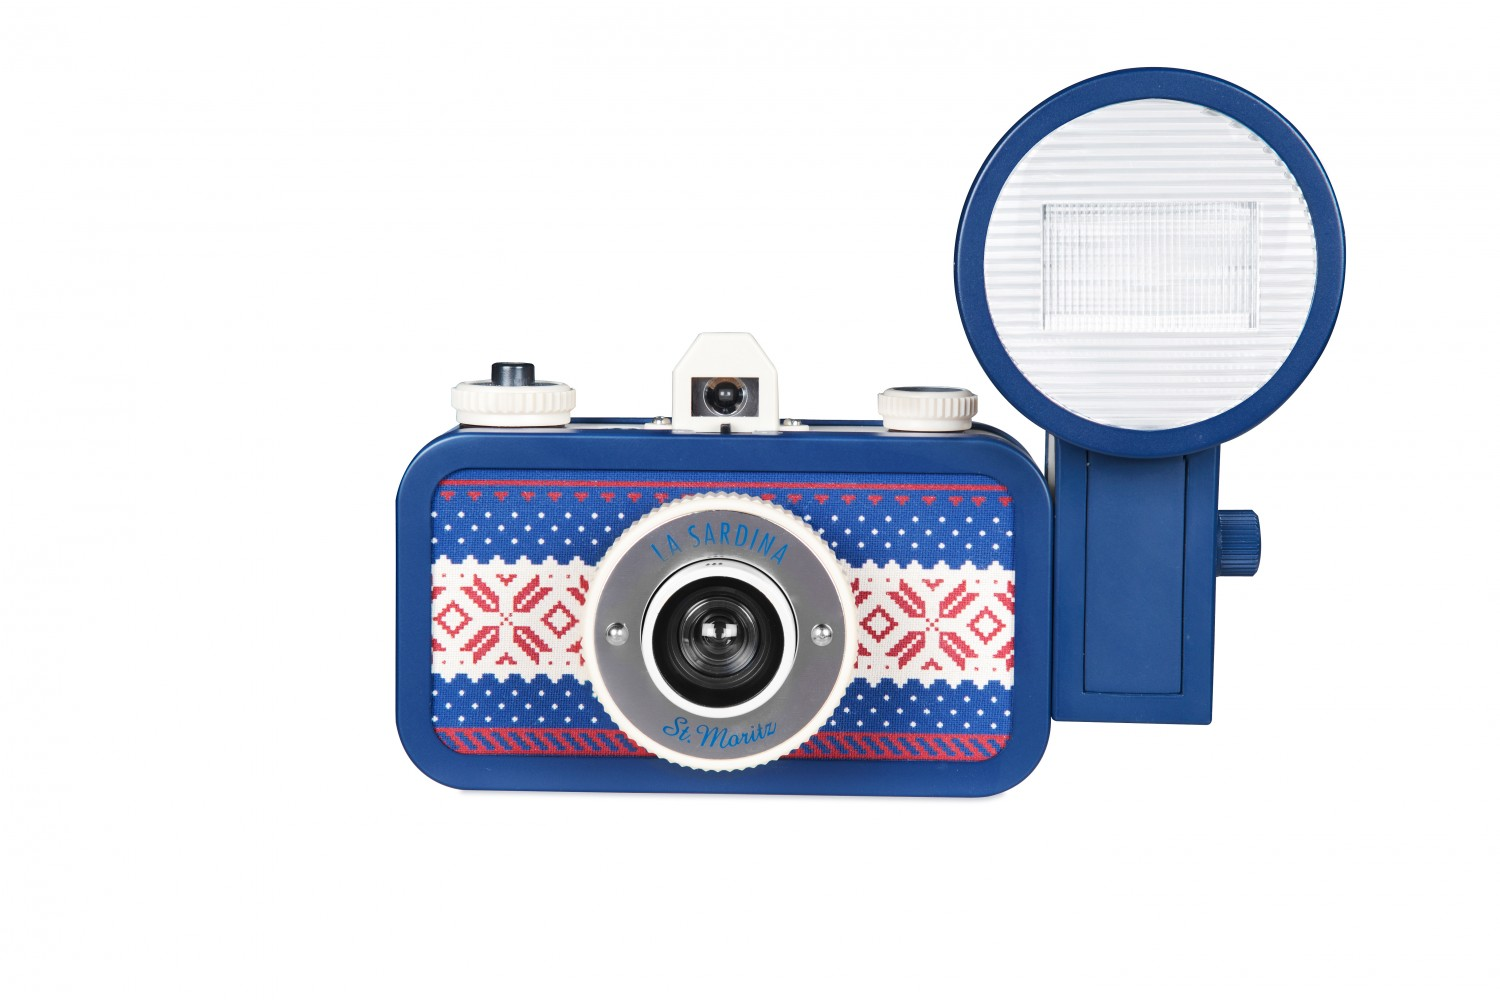 La Sardina and Flash St. Moritz